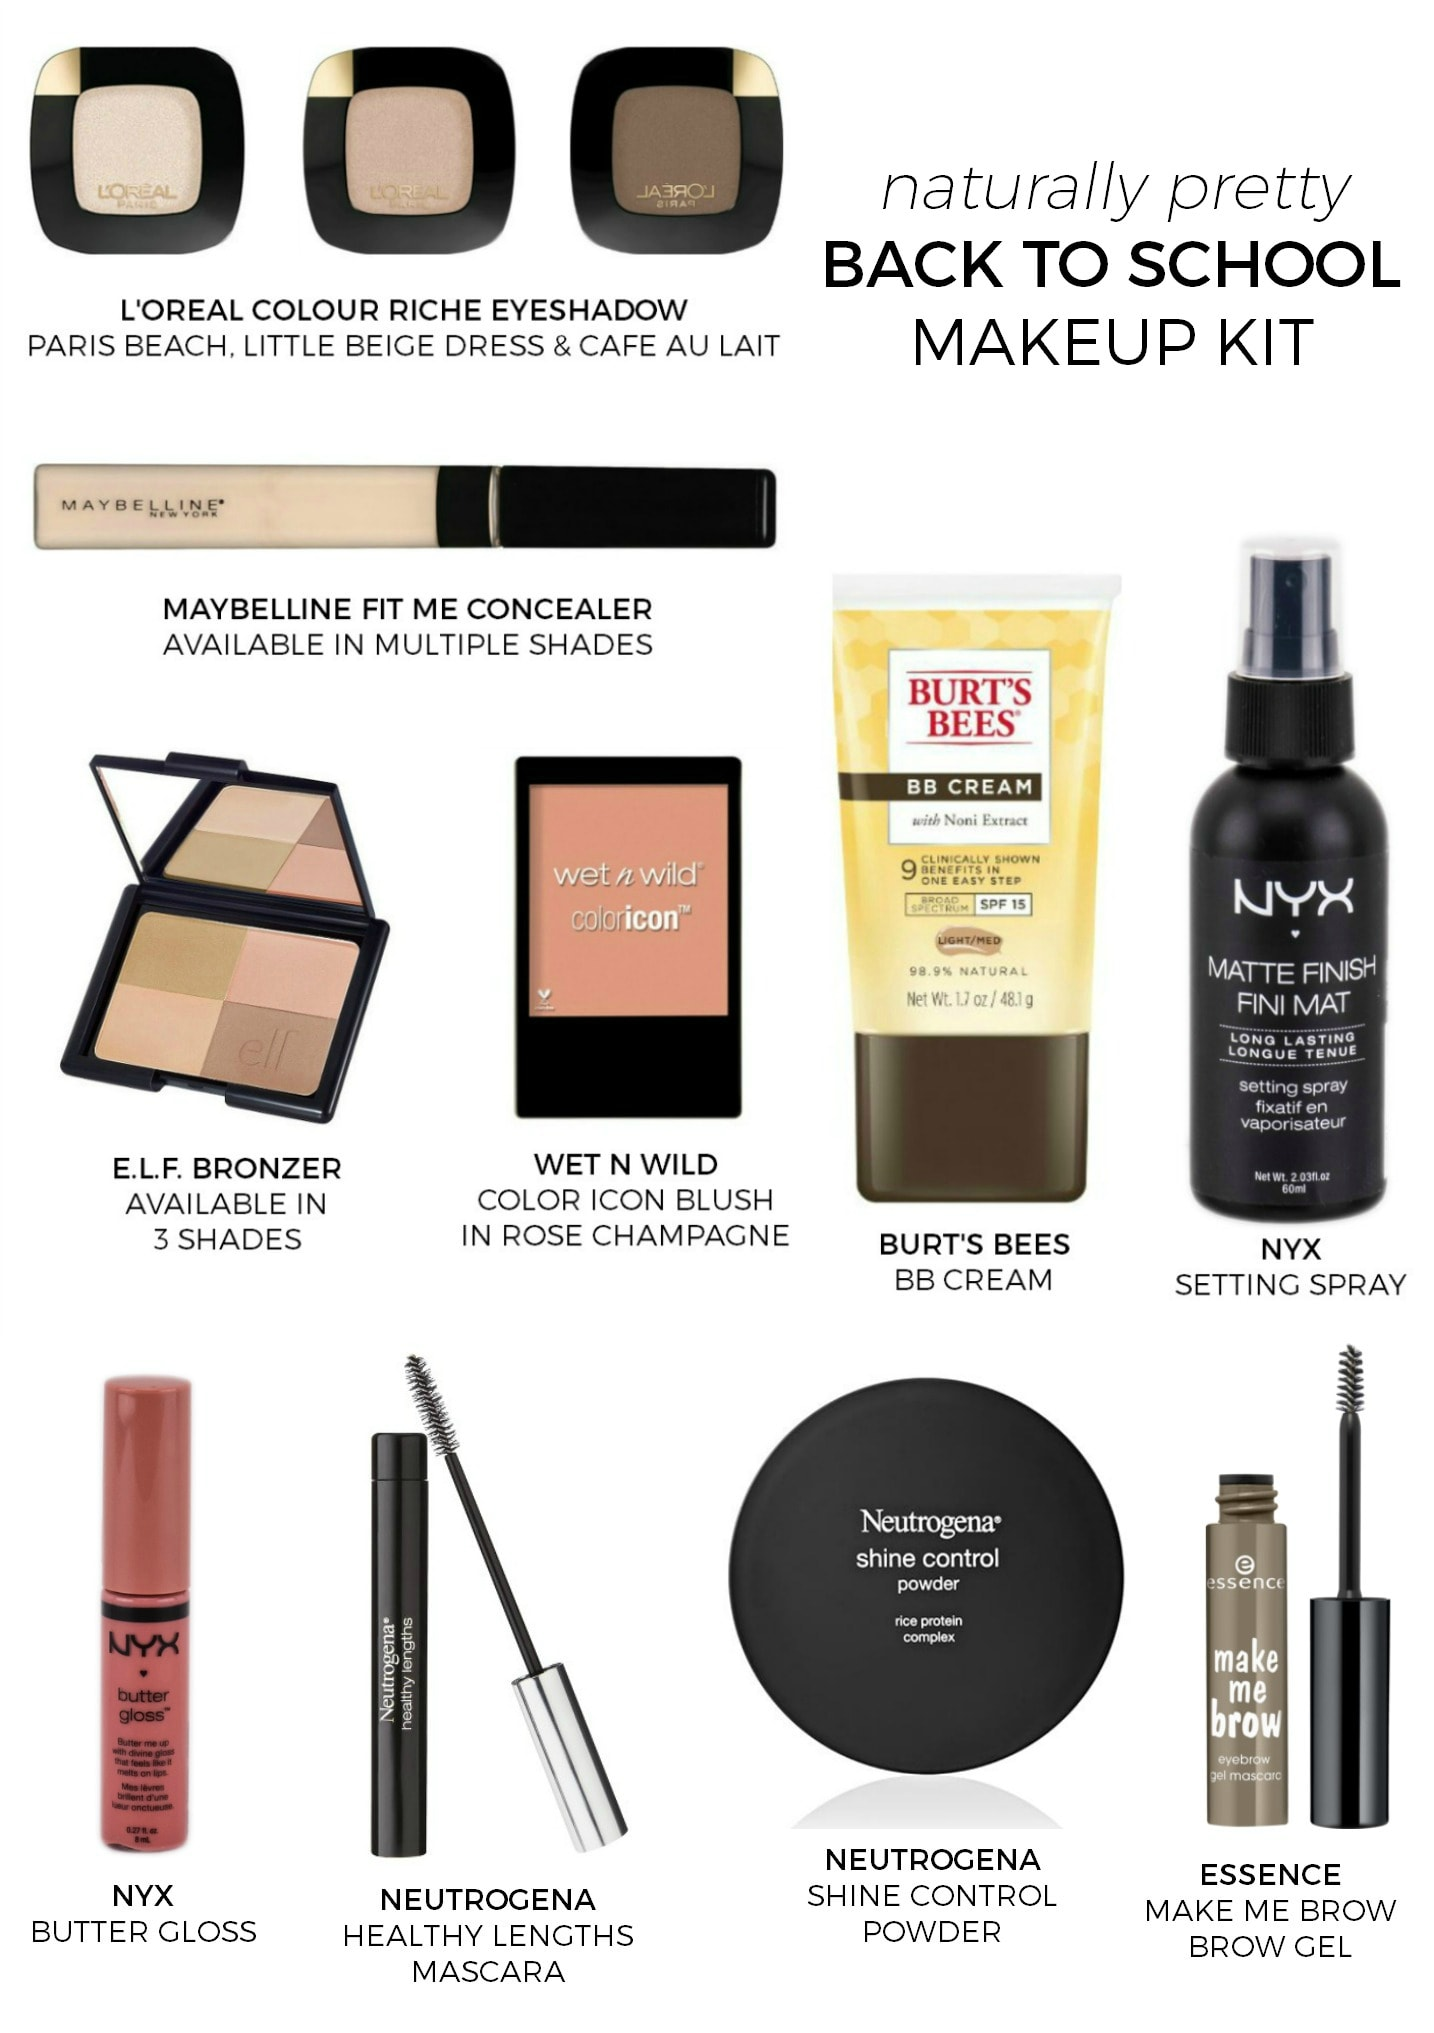 ... naturally-pretty-back-to-school-makeup-kit-natural-